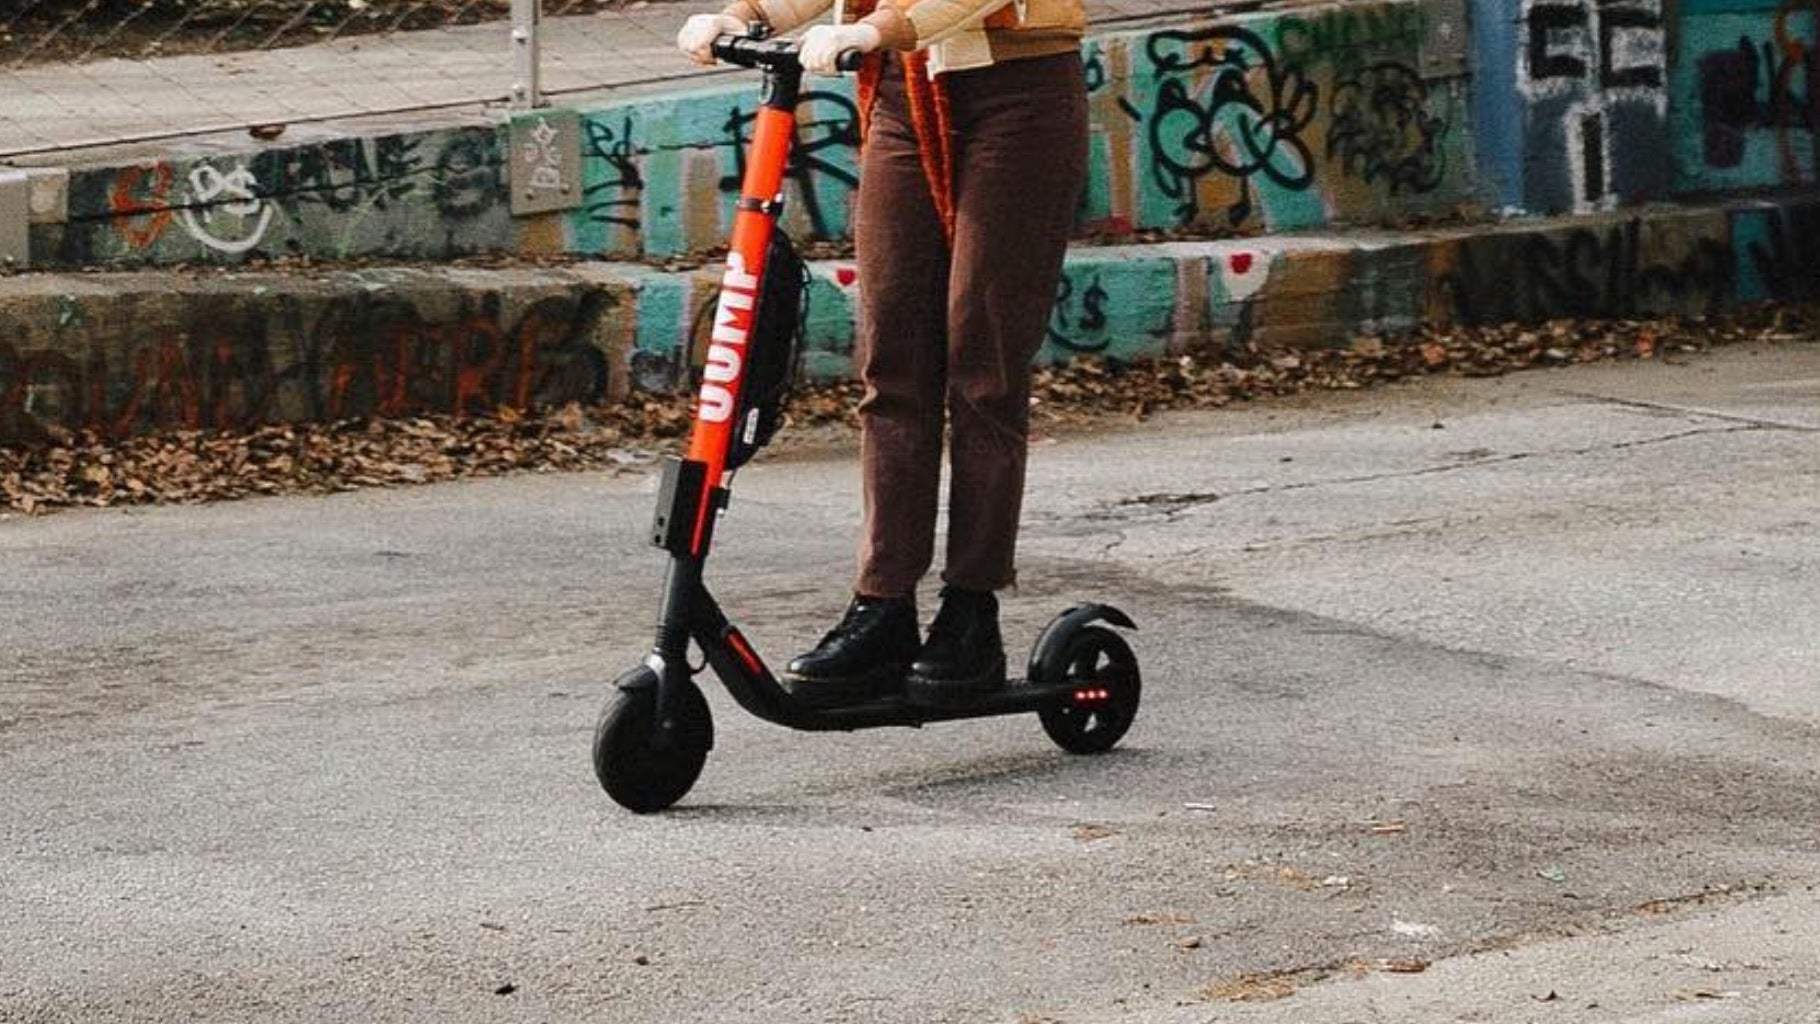 Maybe Don't Charge An E-Scooter If You Plan To Do Crimes